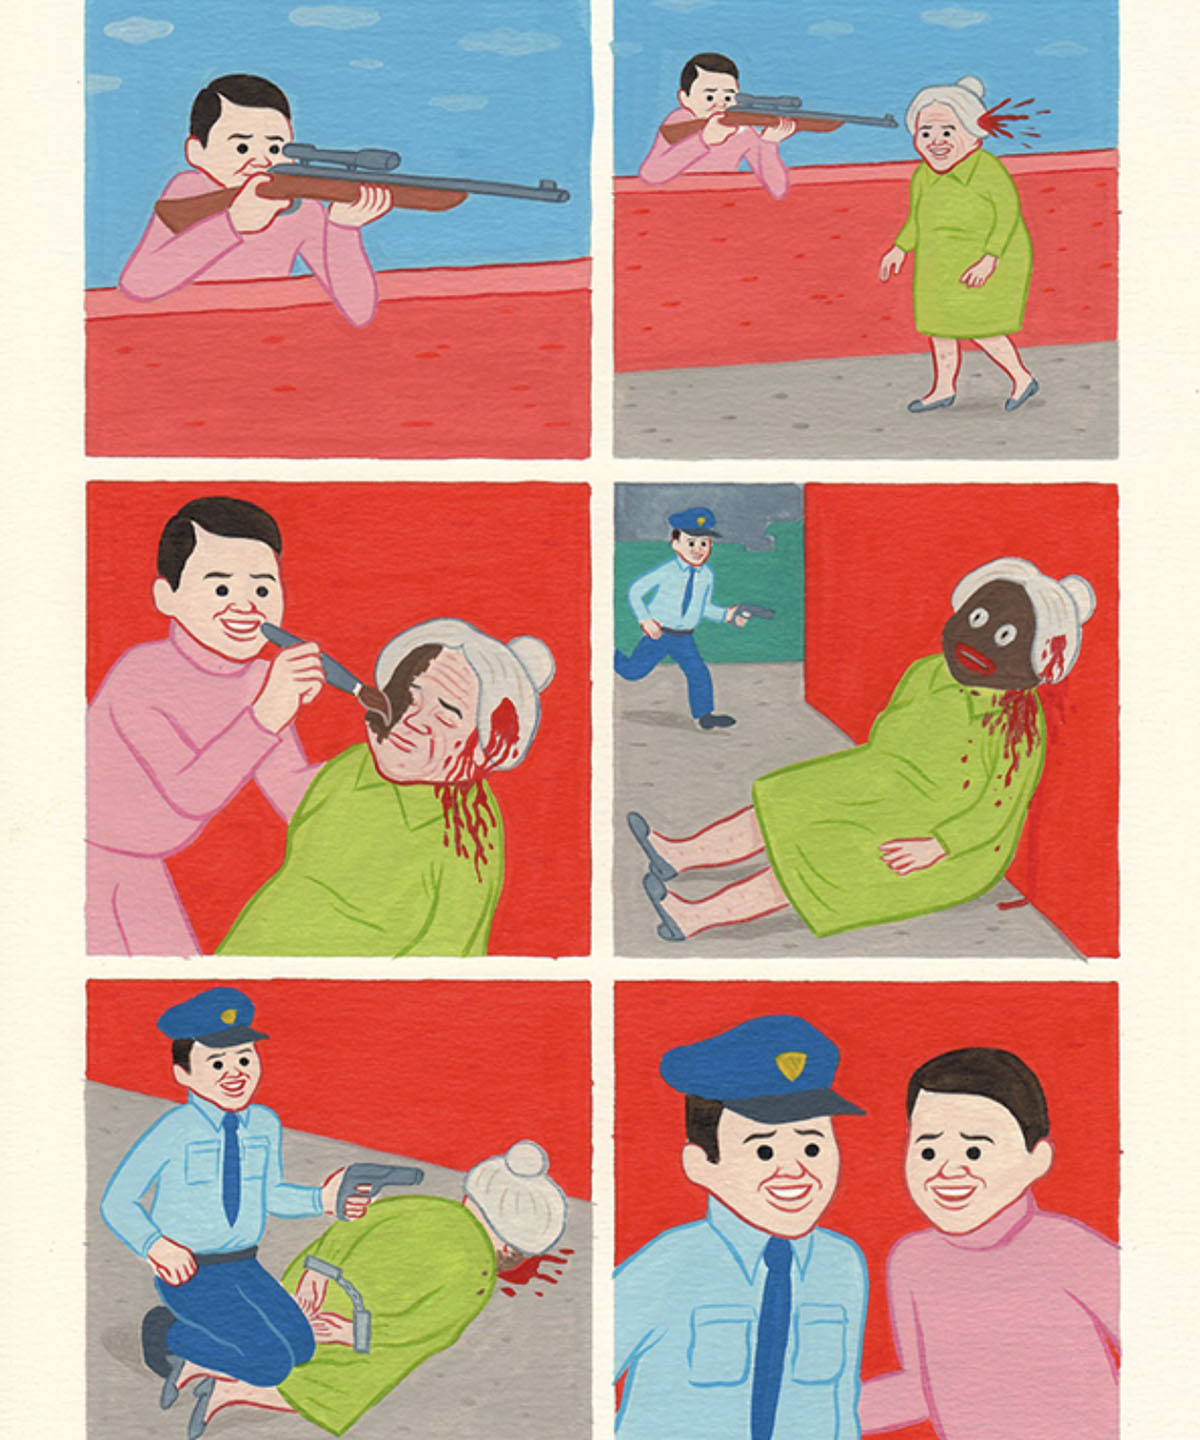 joan_cornella_exhibition_06